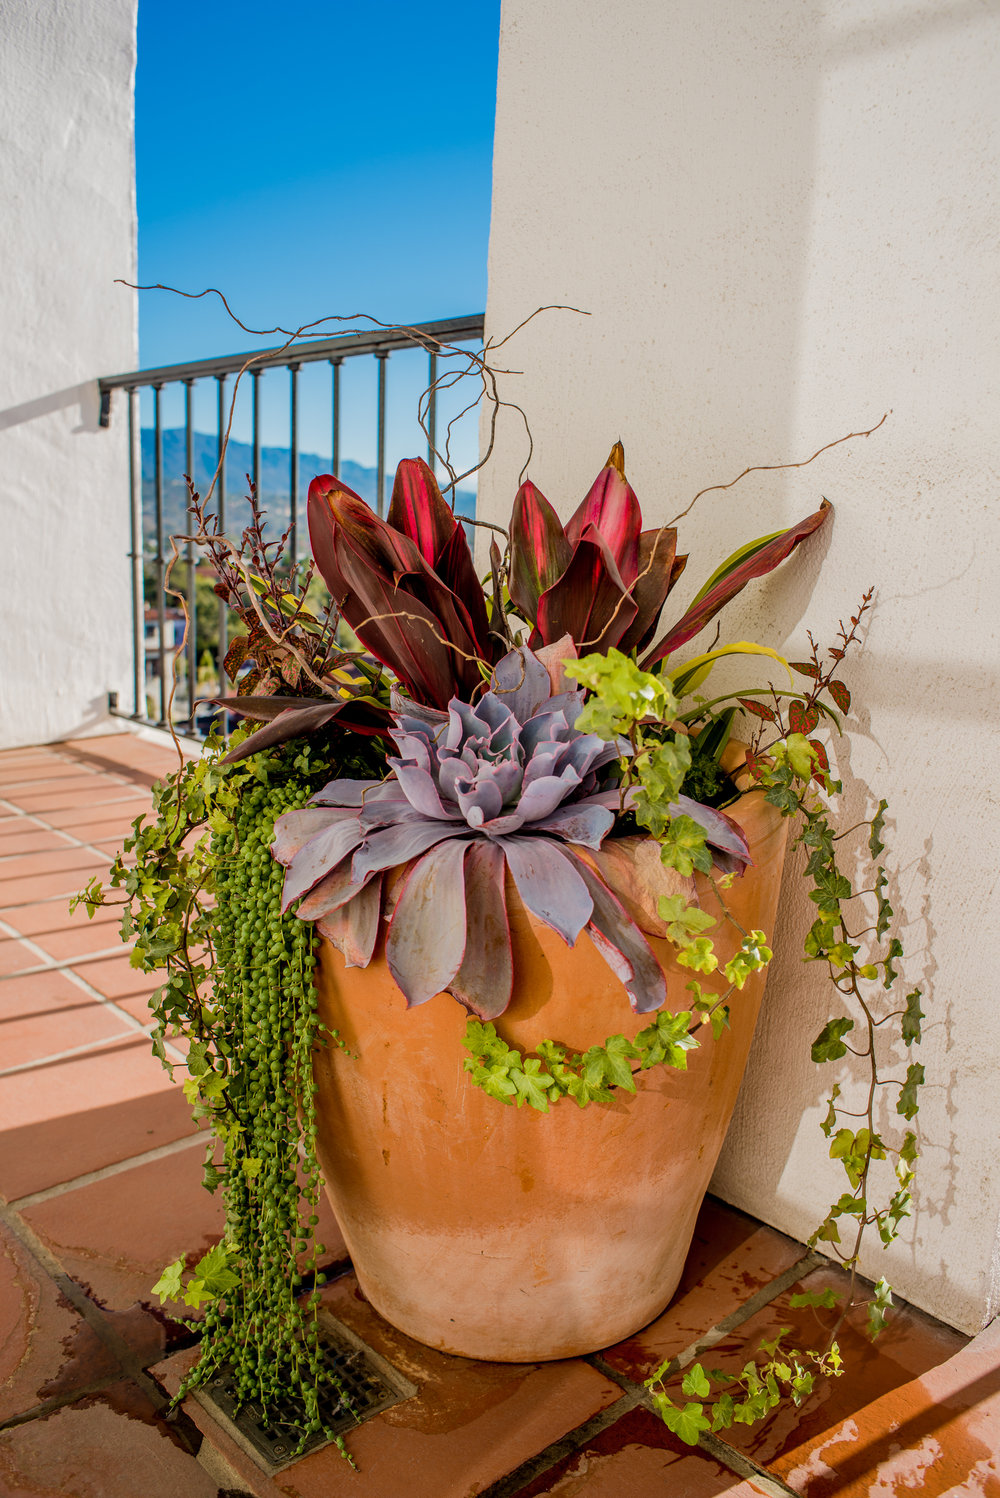 18_Succulent_Plants_large_outdoor_business_EL.jpg